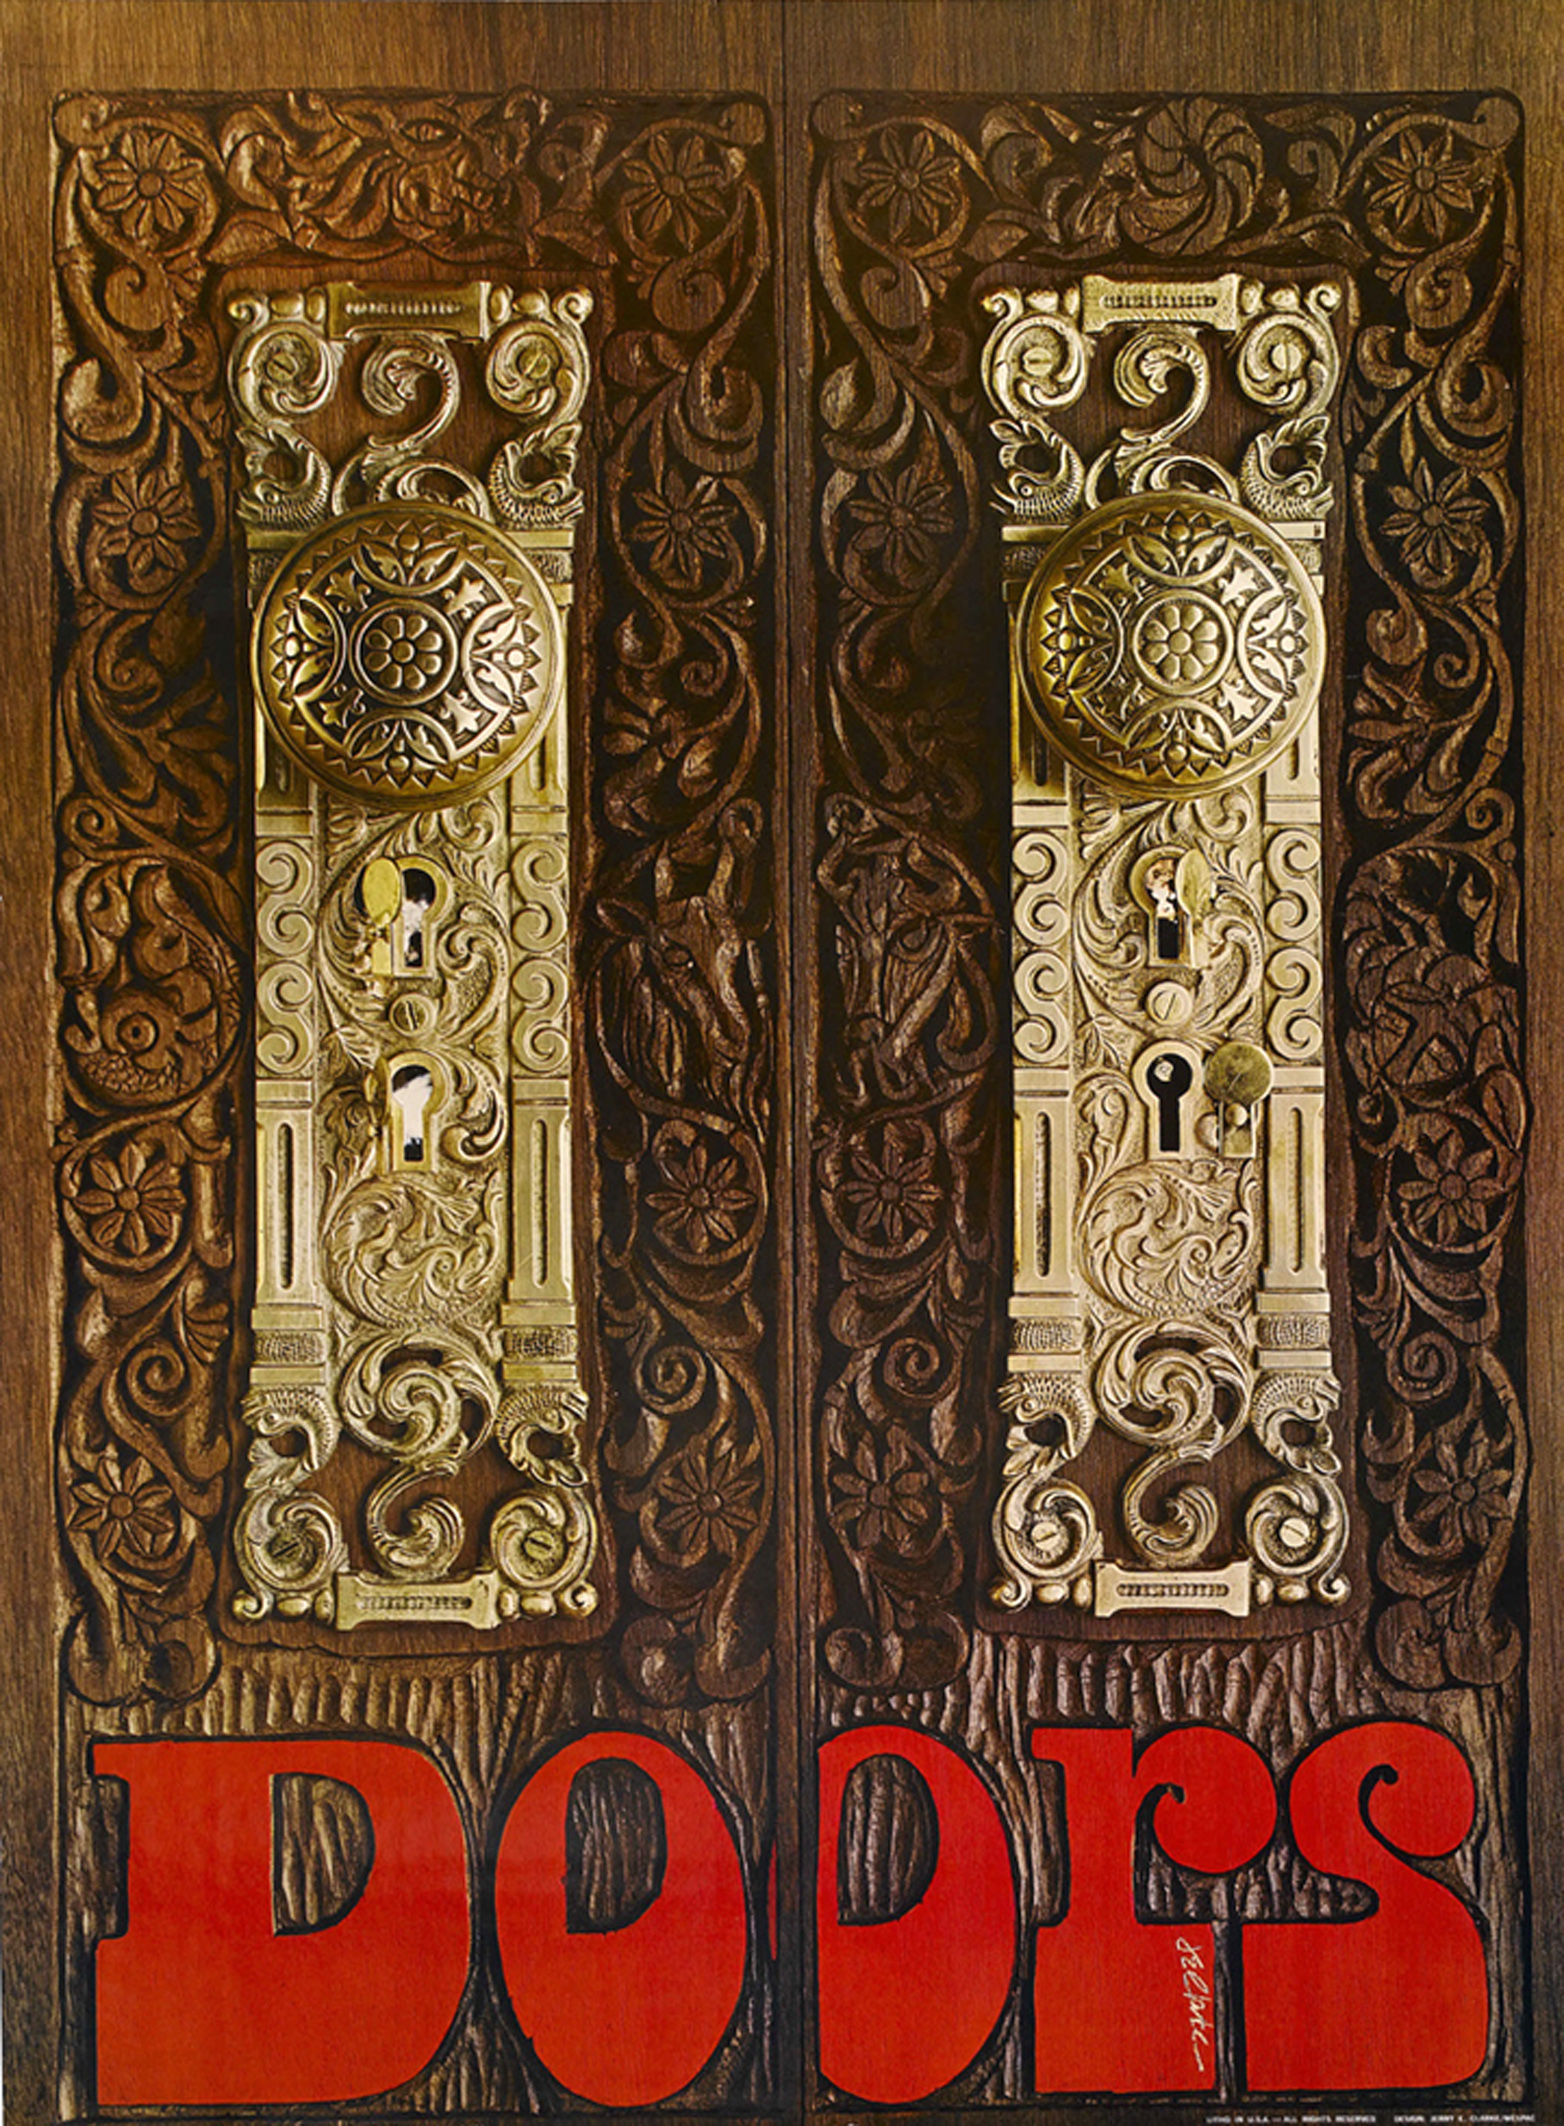 The Doors Promotional Poster (Wespac, 1969)